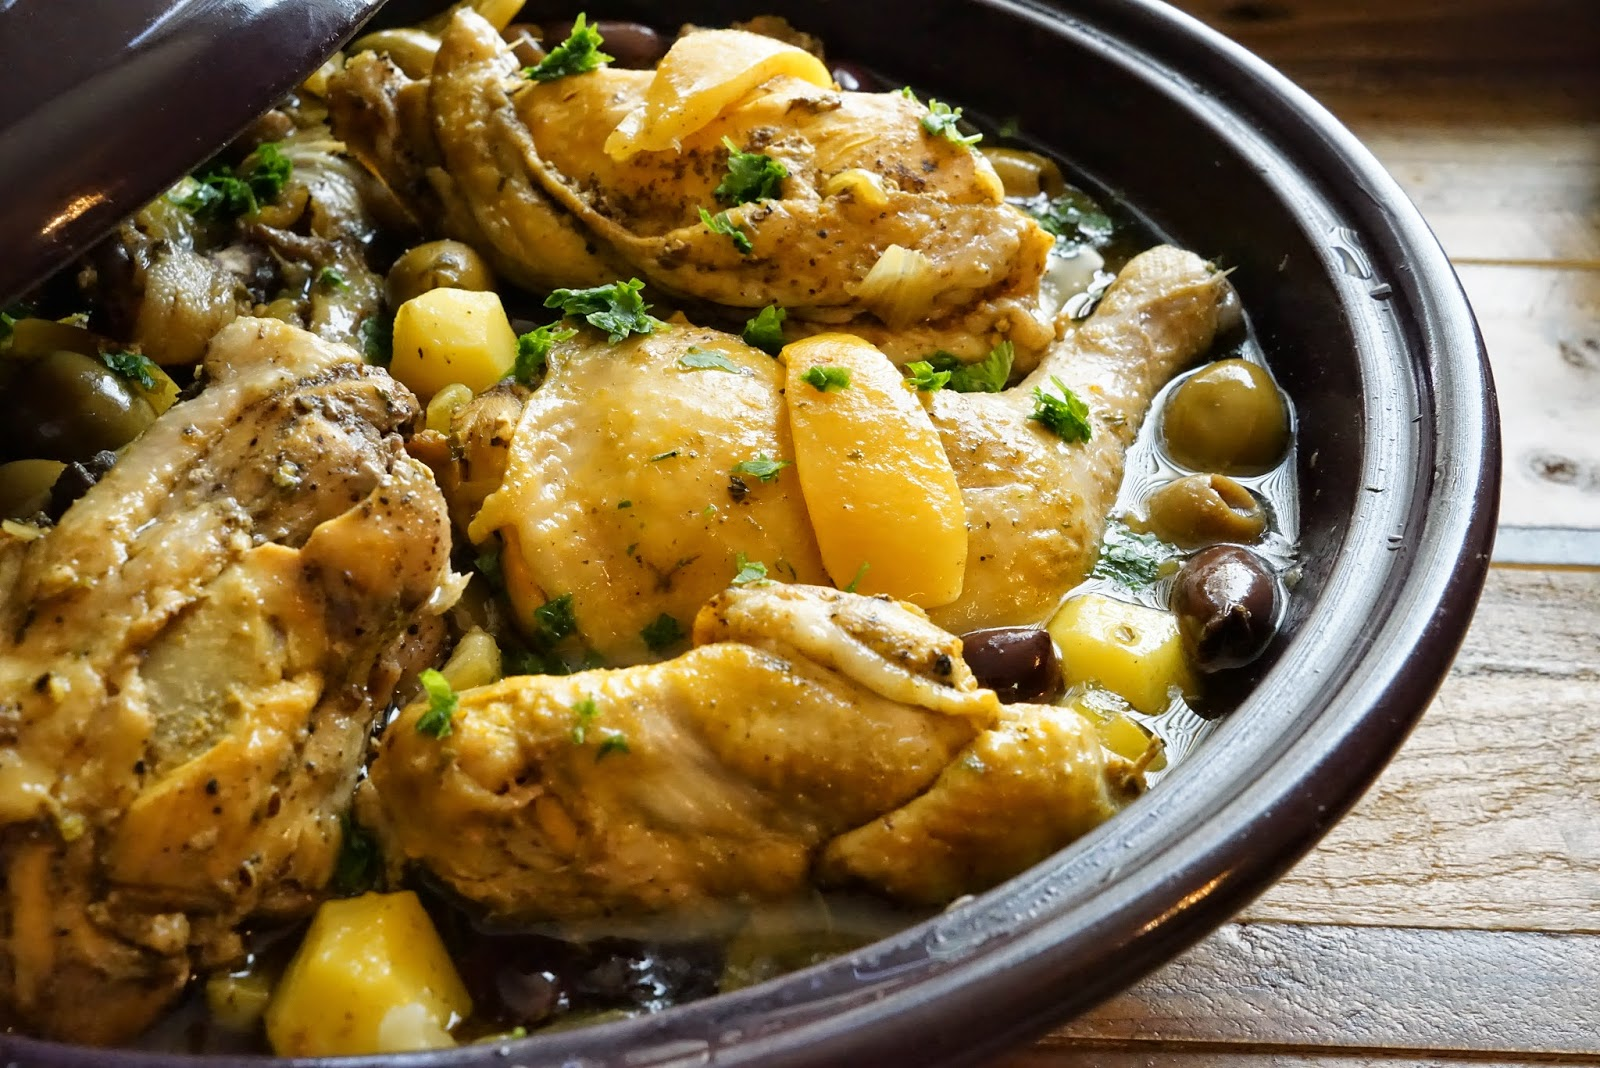 Moroccan preserved lemon chicken tagine chef rachida increase the heat under the tagine and cook until the sauce is reduced to a thick consistency about 10 15 minutes longer add parsley cilantro and lemon forumfinder Images